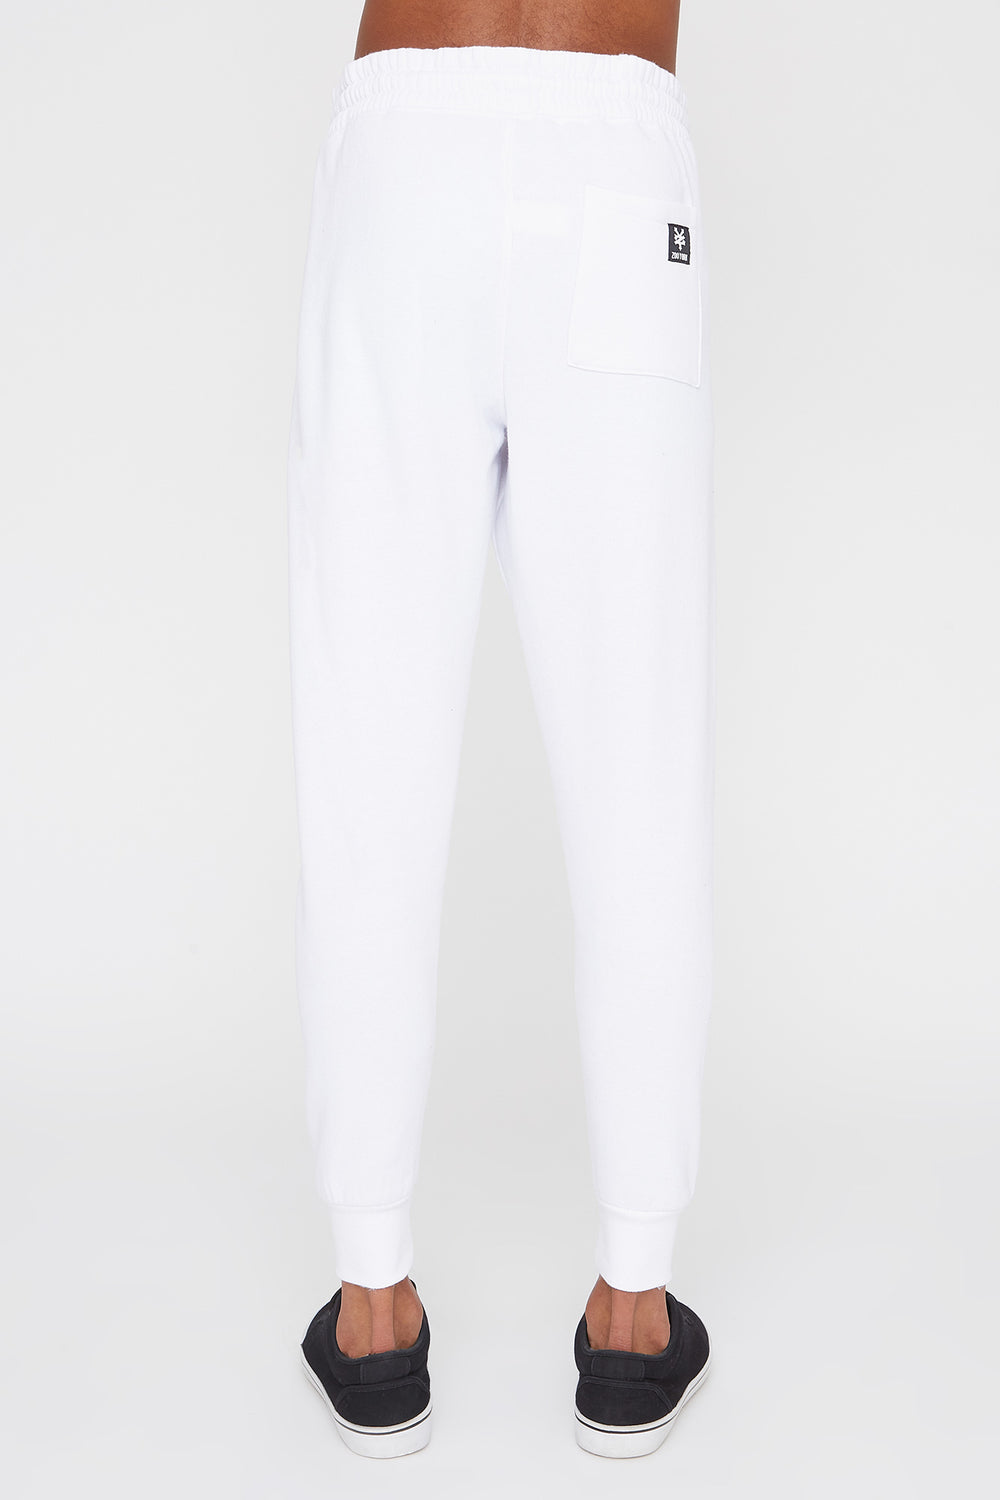 Zoo York Mens Chenille Patch Logo Joggers White